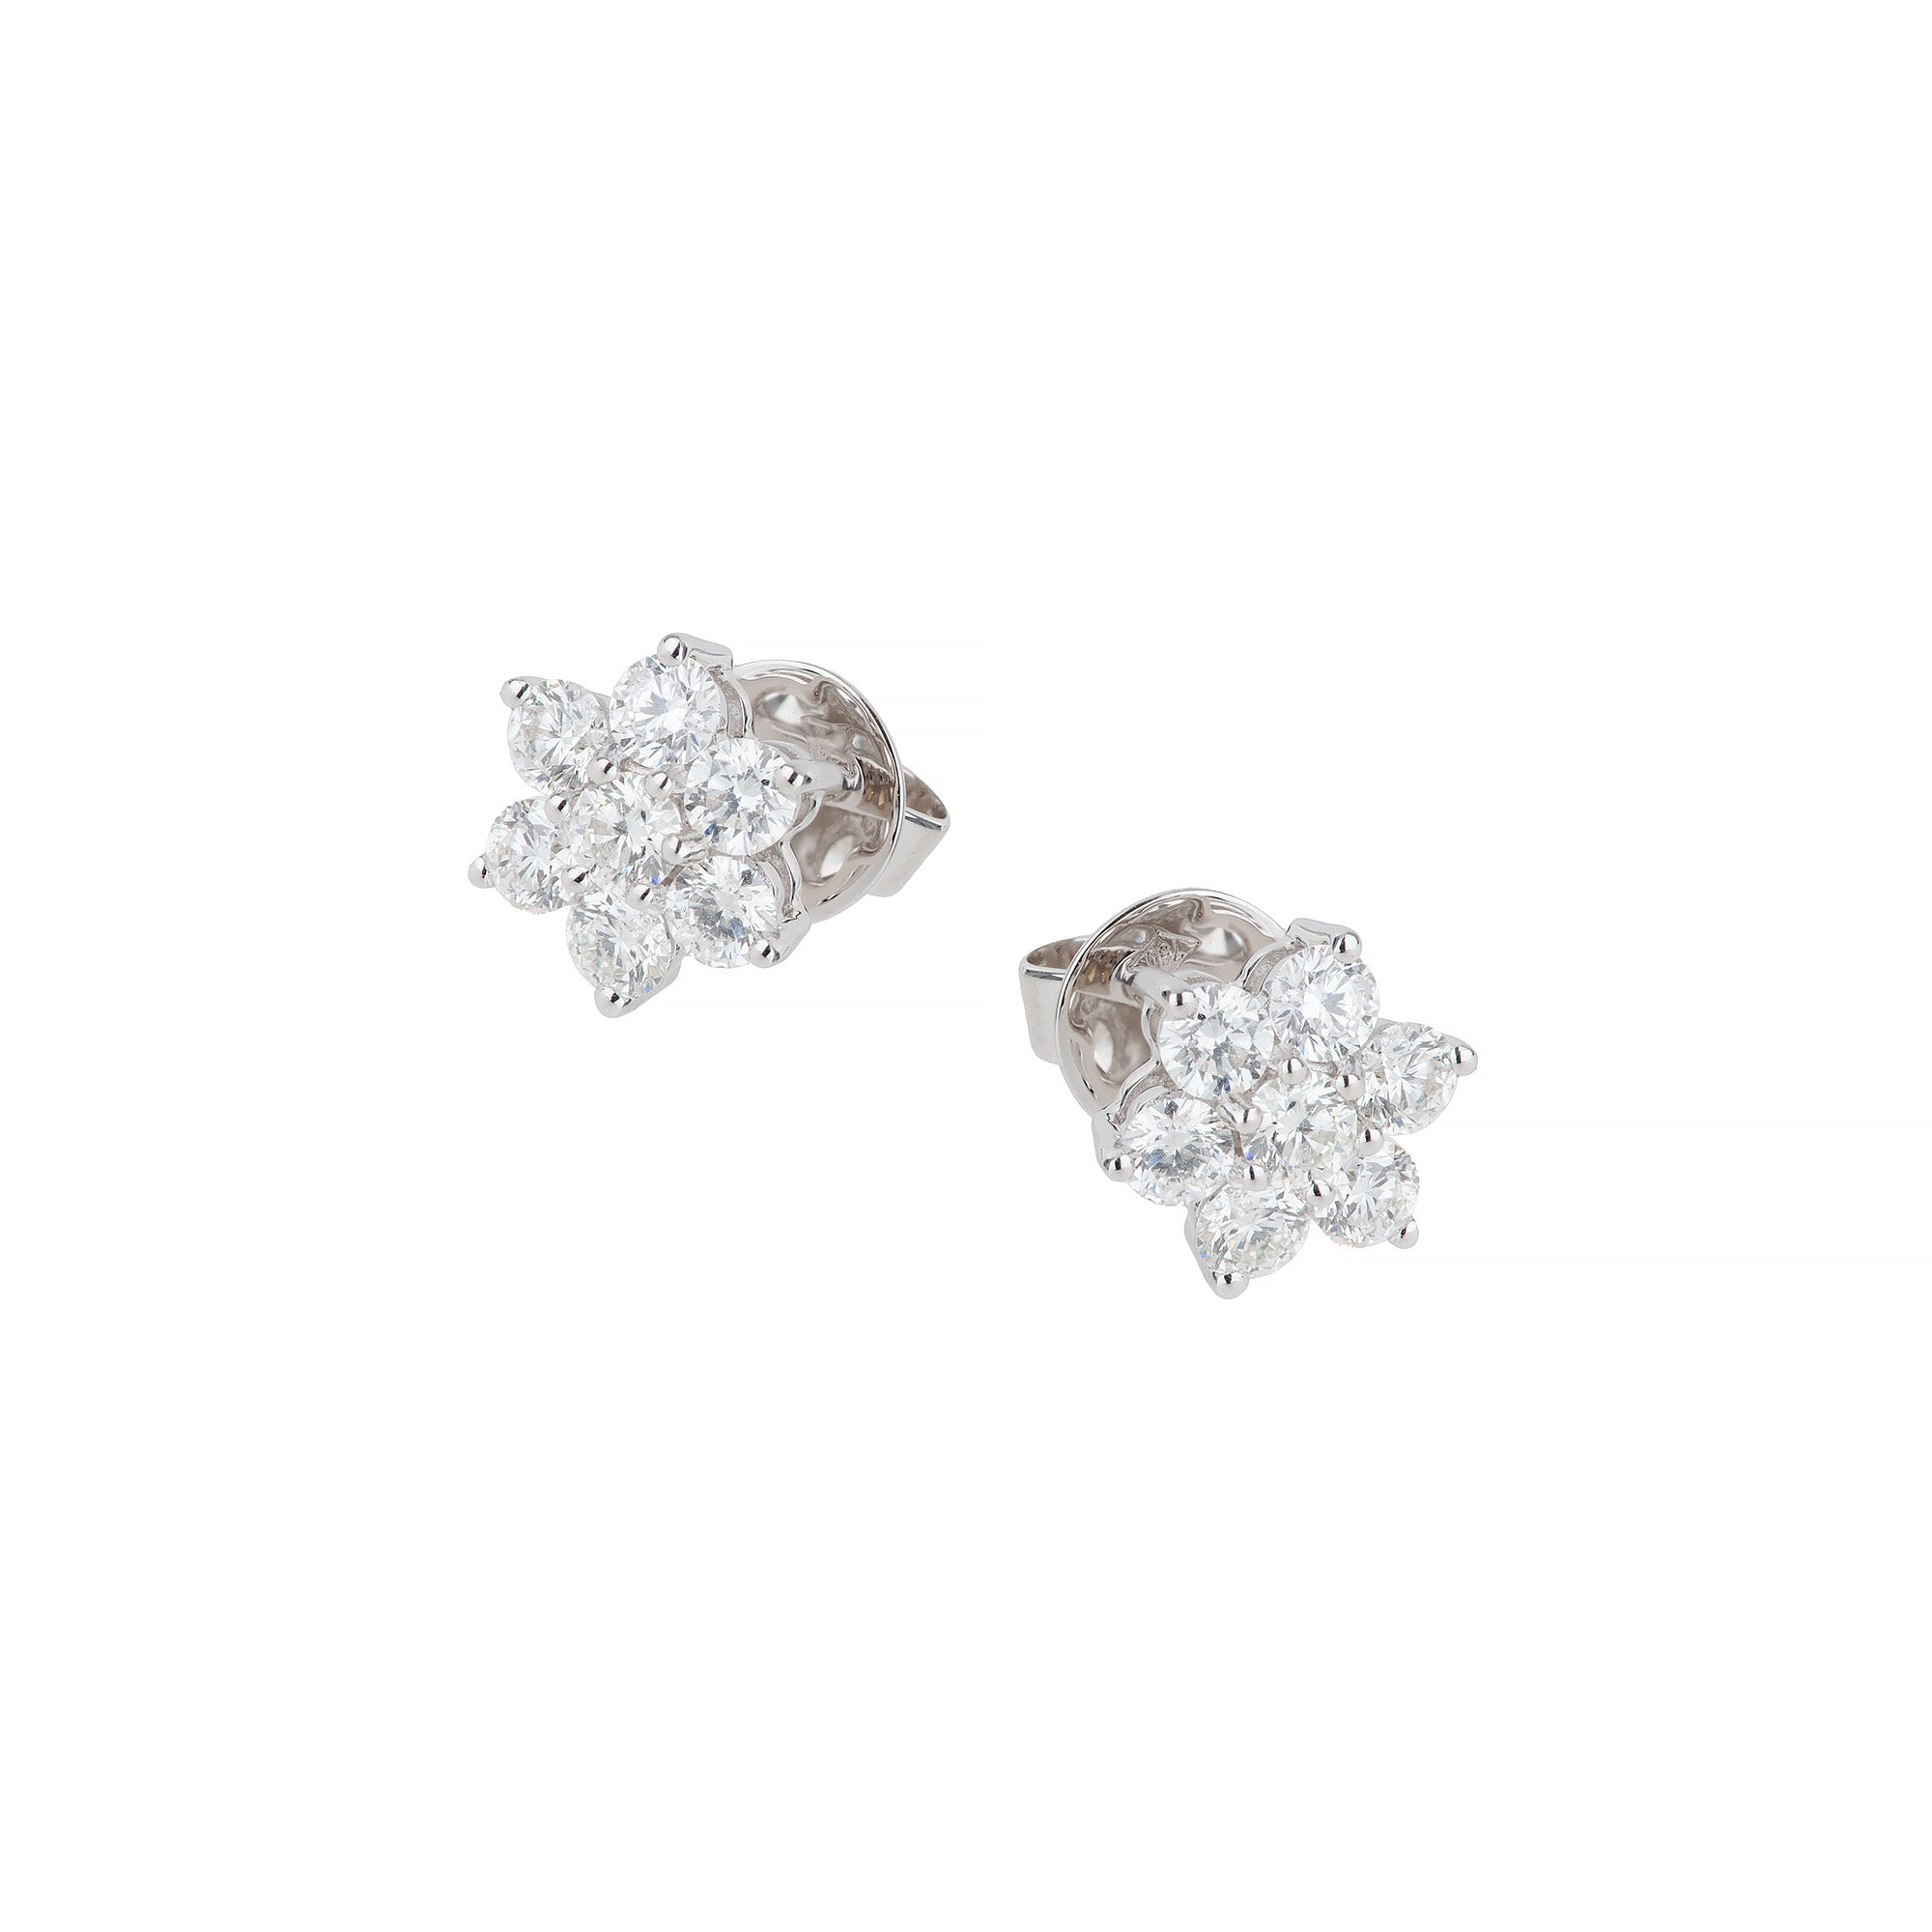 18ct white gold diamond flower cluster earrings